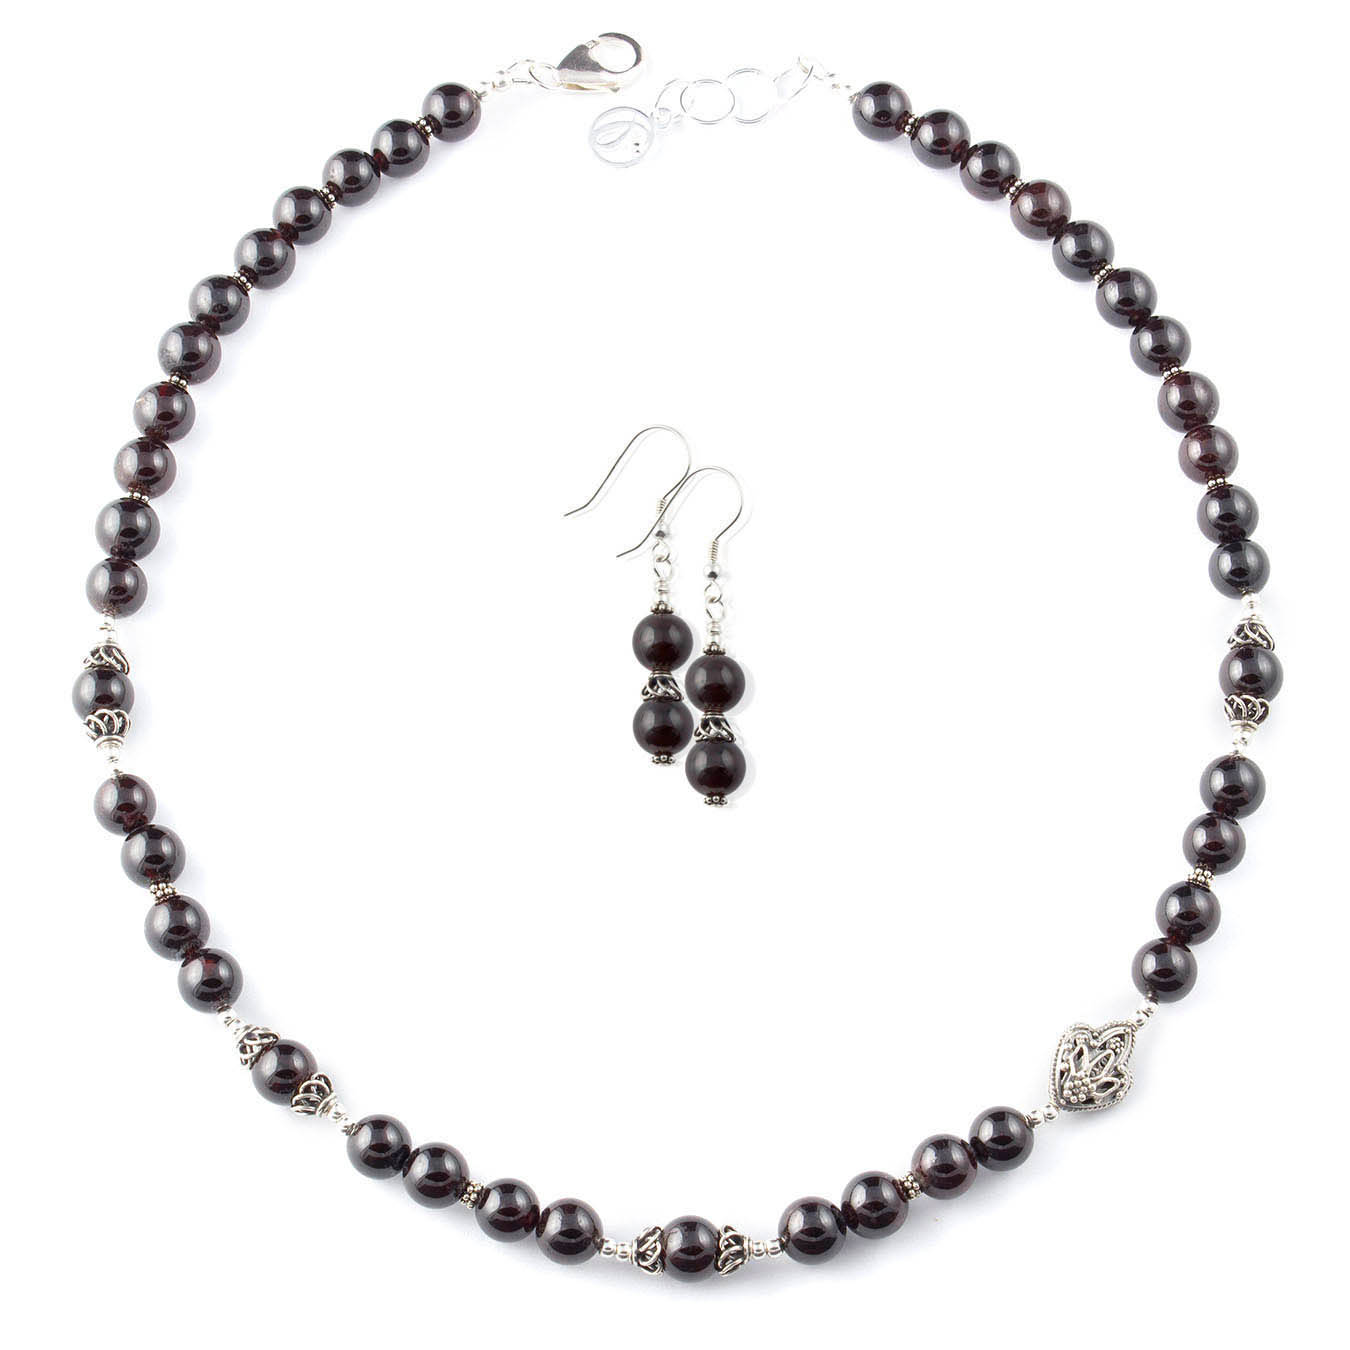 Beaded birthstone jewelry necklace made with garnet and bali silver